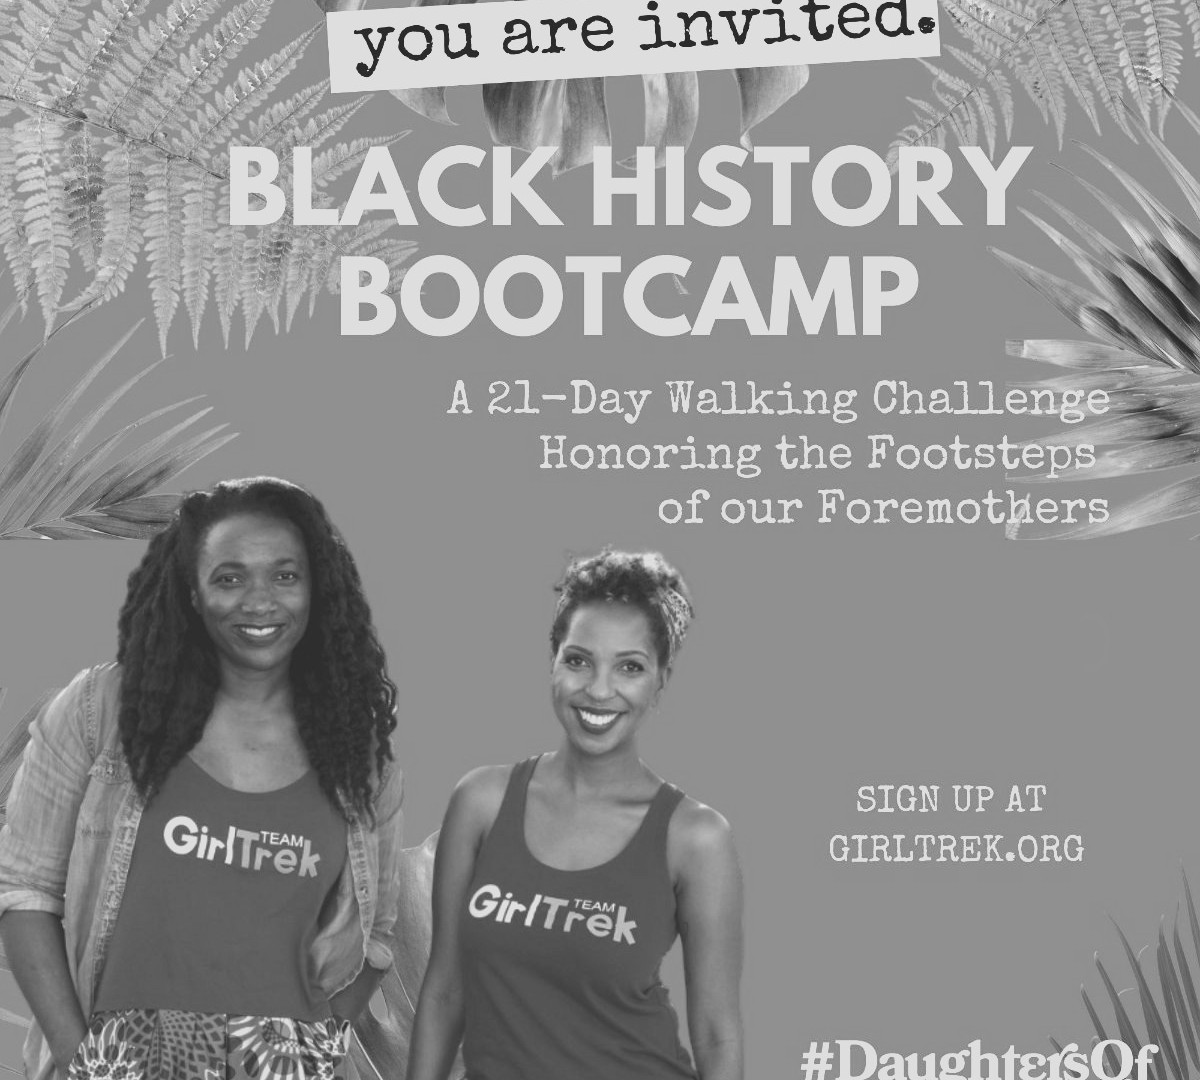 A little listen to day 2 of black history bootcamp part 1/3